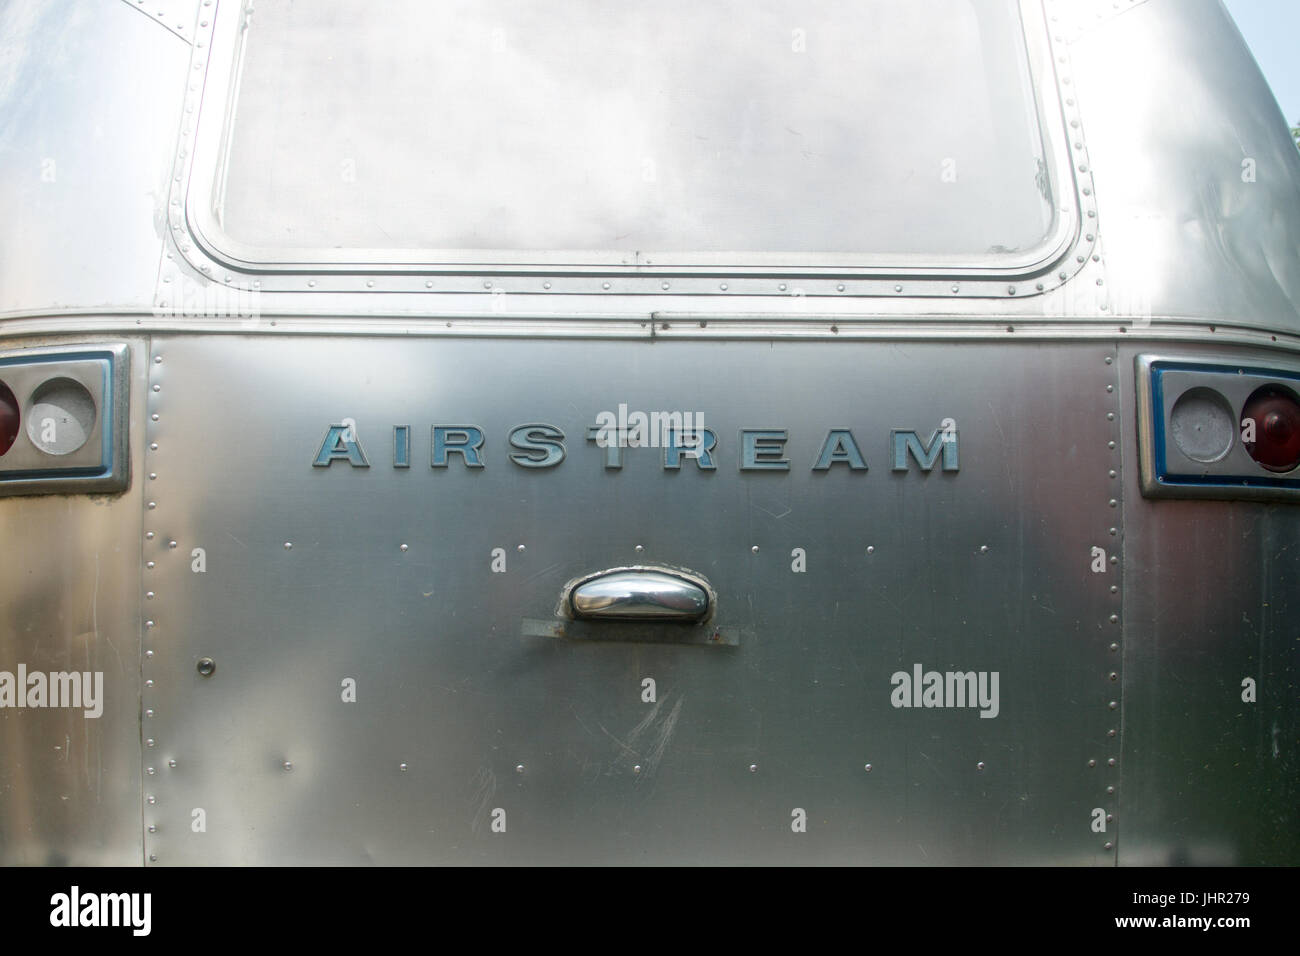 Tight shot of old Airstream logo. - Stock Image